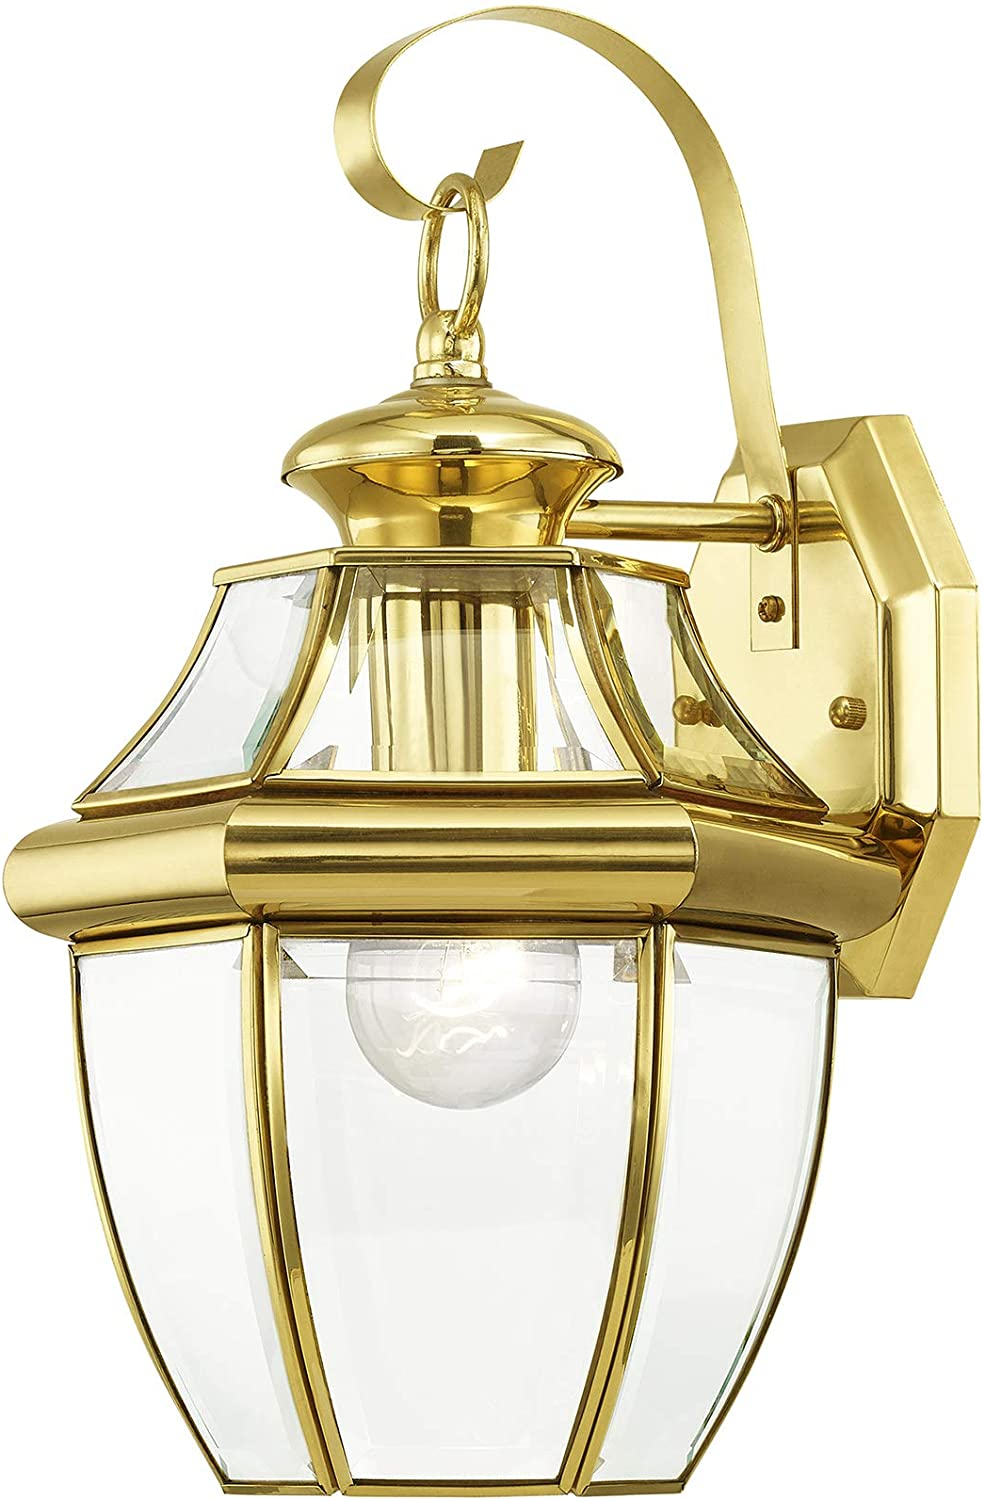 Livex Lighting 2151-02 Monterey 1 Light Outdoor Polished Brass Finish Solid Brass Wall Lantern  with Clear Beveled Glass